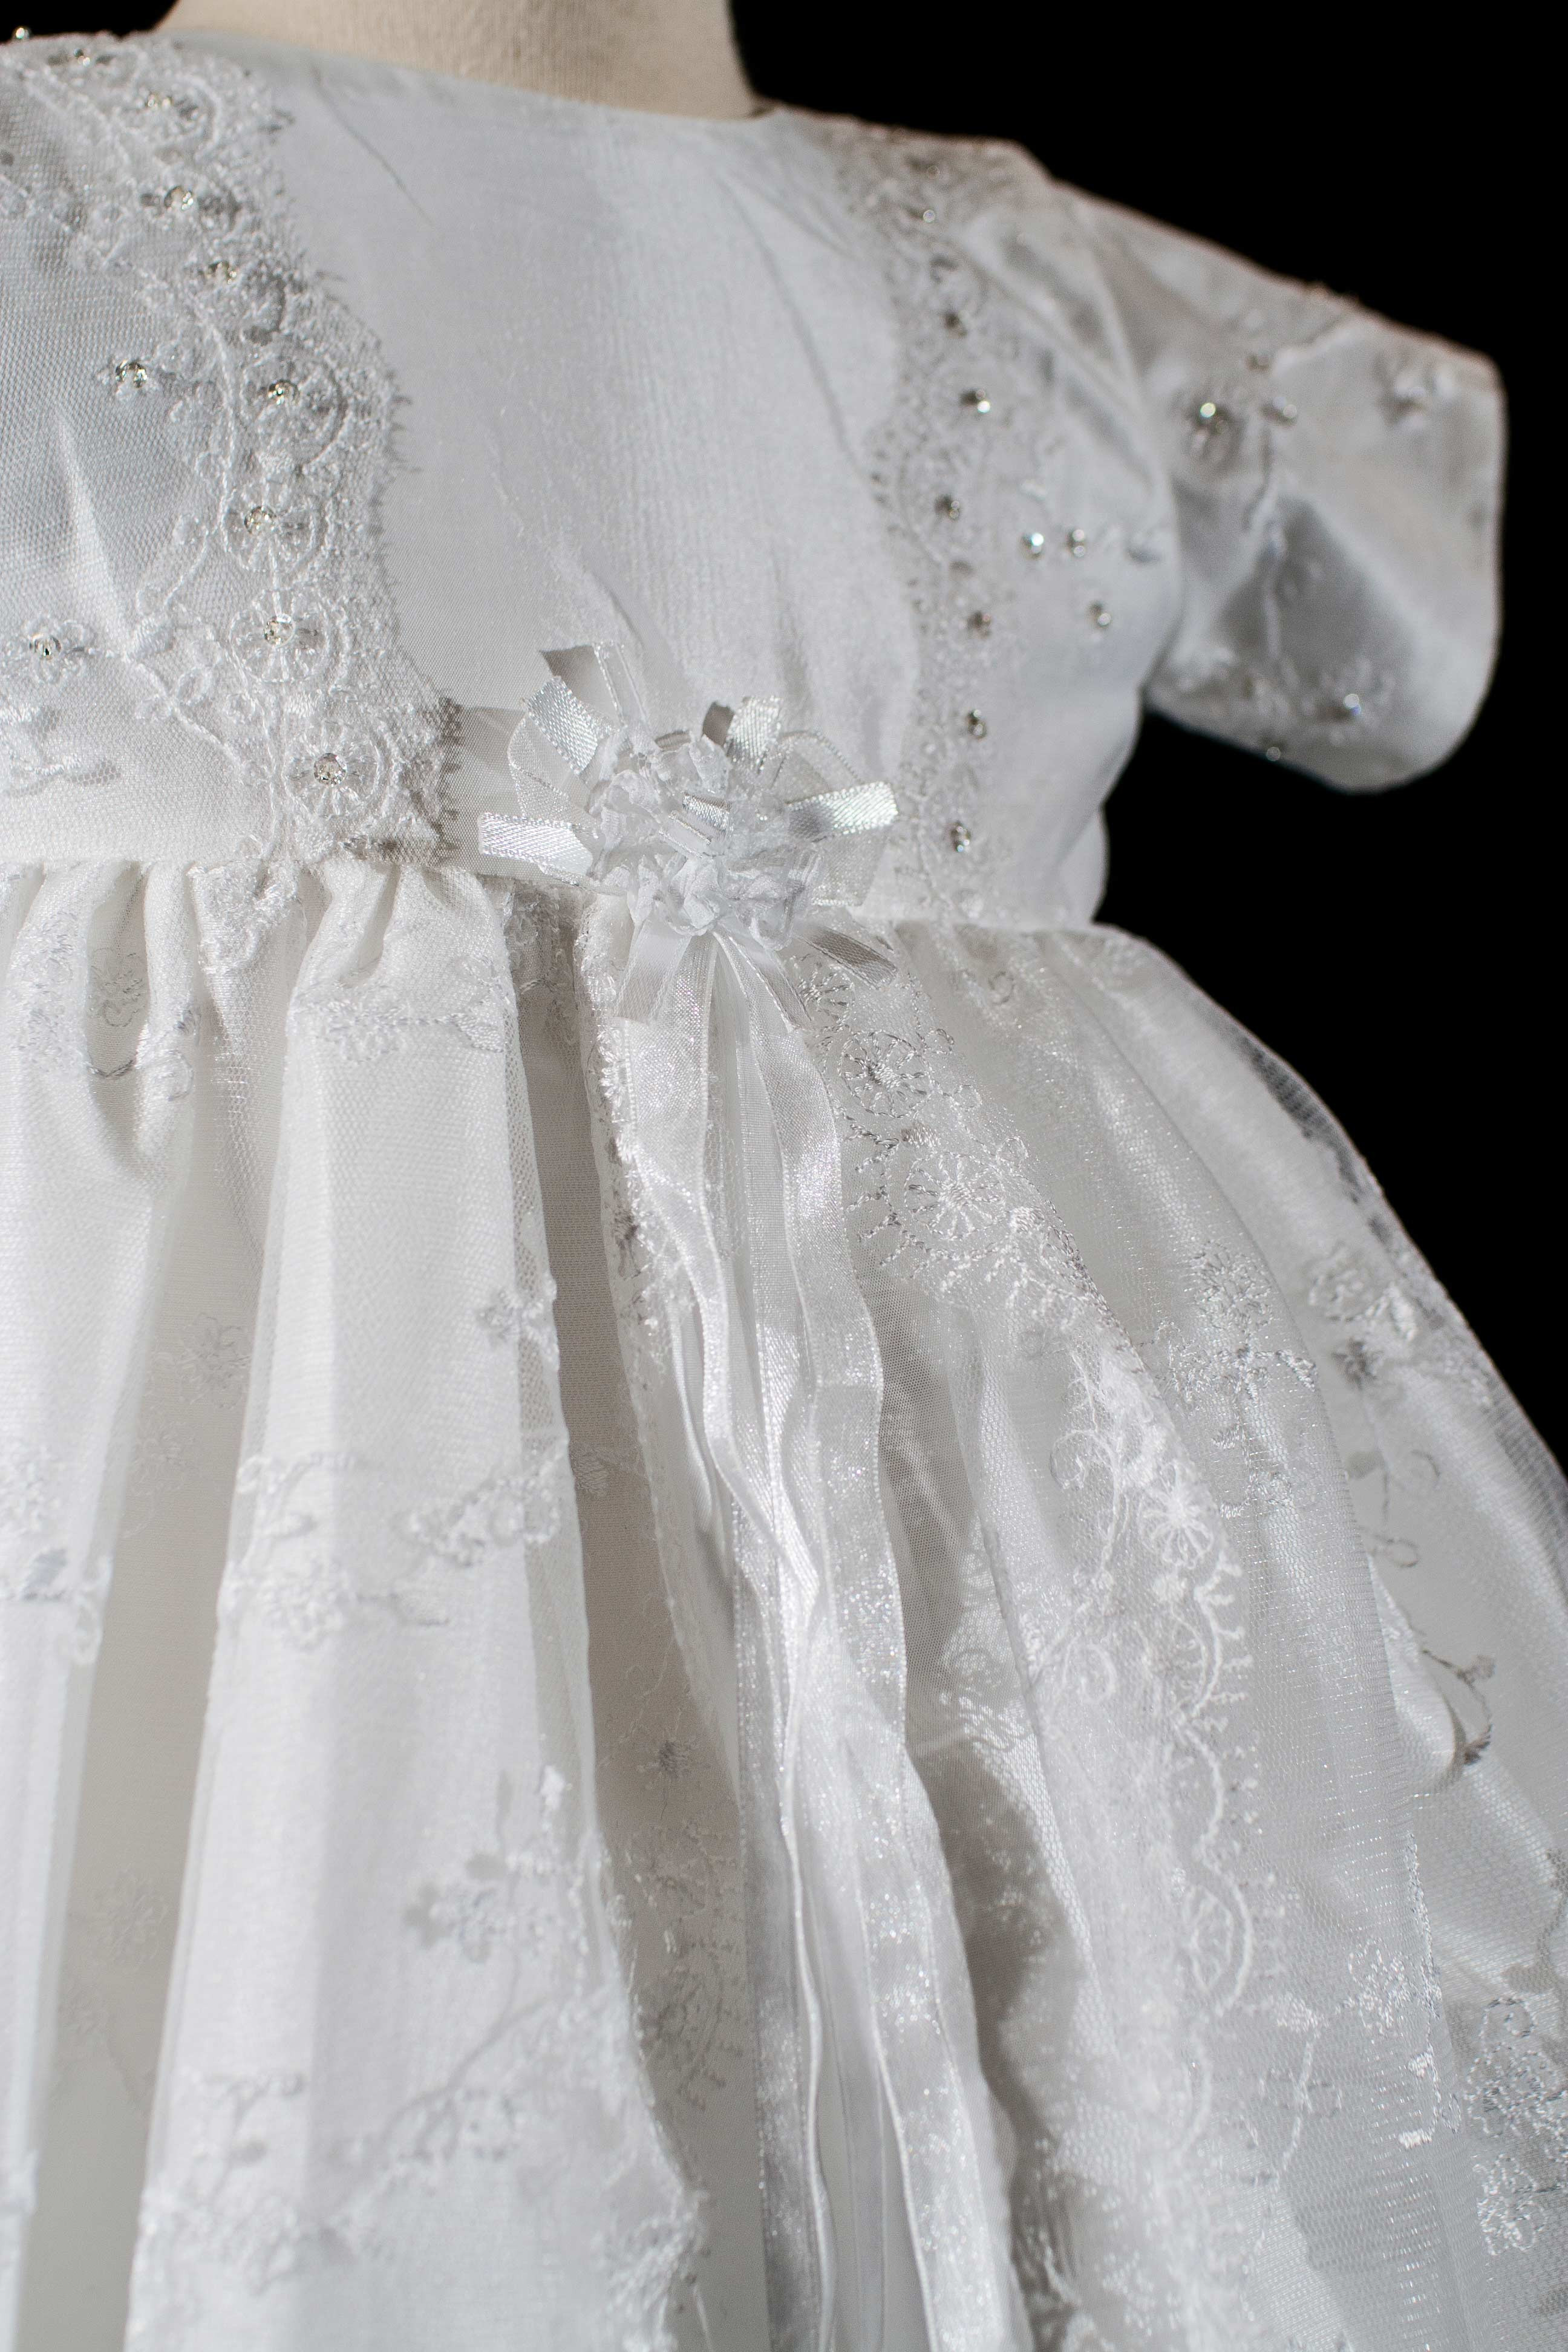 Lace Christening Dress Best Of Lace Christening Dress I363c Sweetie Pie Collection Of Innovative 42 Images Lace Christening Dress